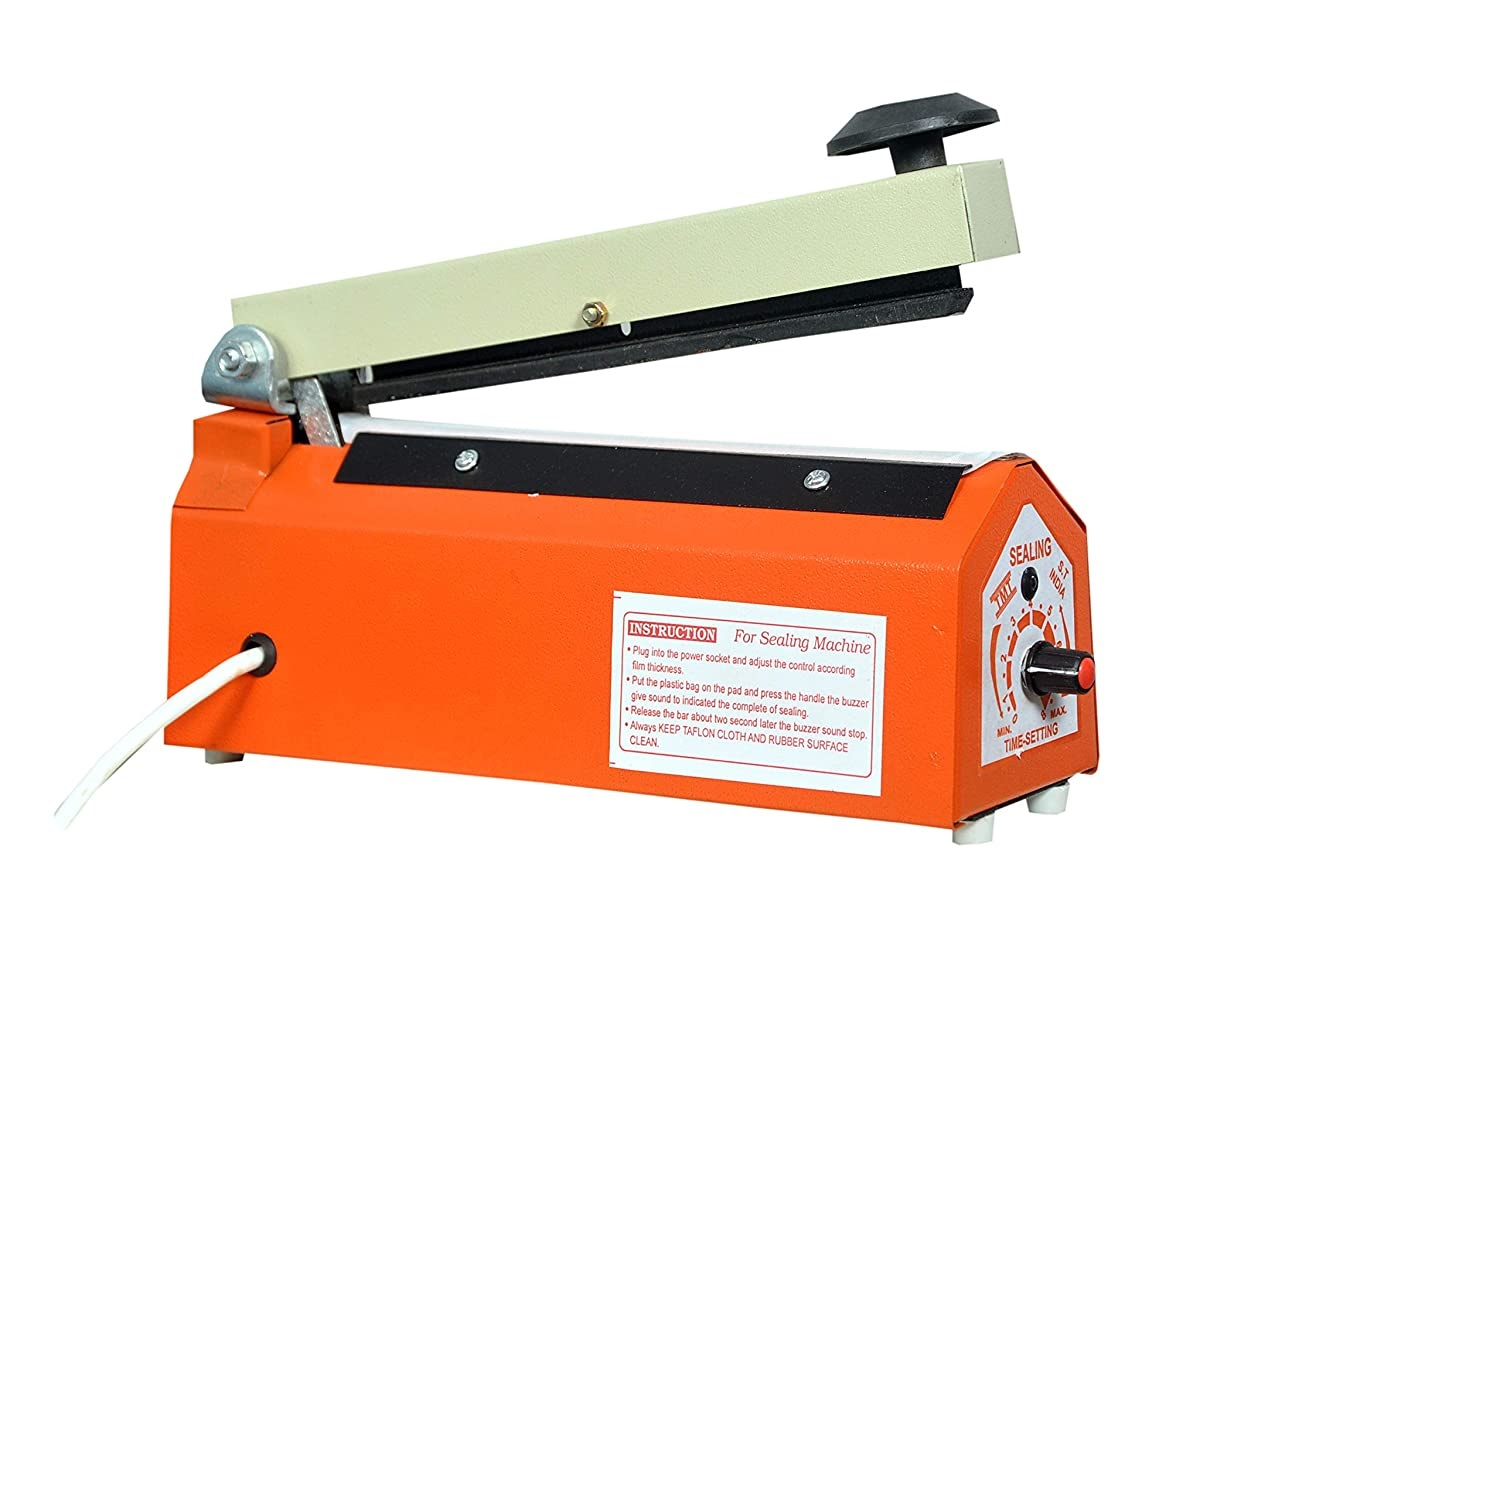 KARSYN Packet Heat Sealer Packing Sealing Machine (Impulse Plastic Pouch Hand Table Top Polythene 8 Inch, Multicolor).